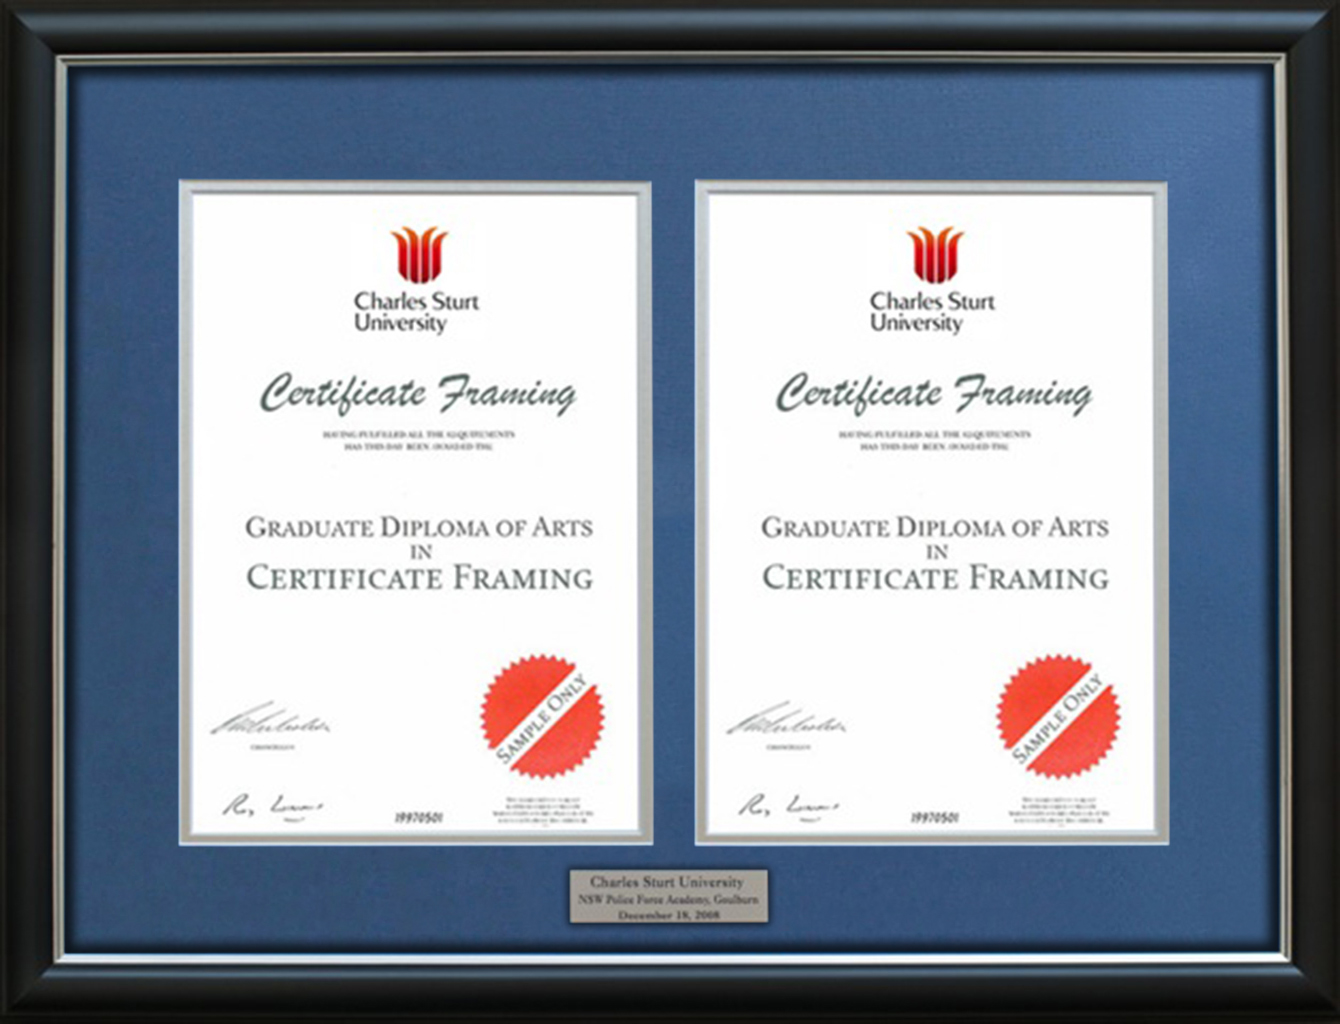 Certificate Framing - University Degree Frames - Graduation Frames